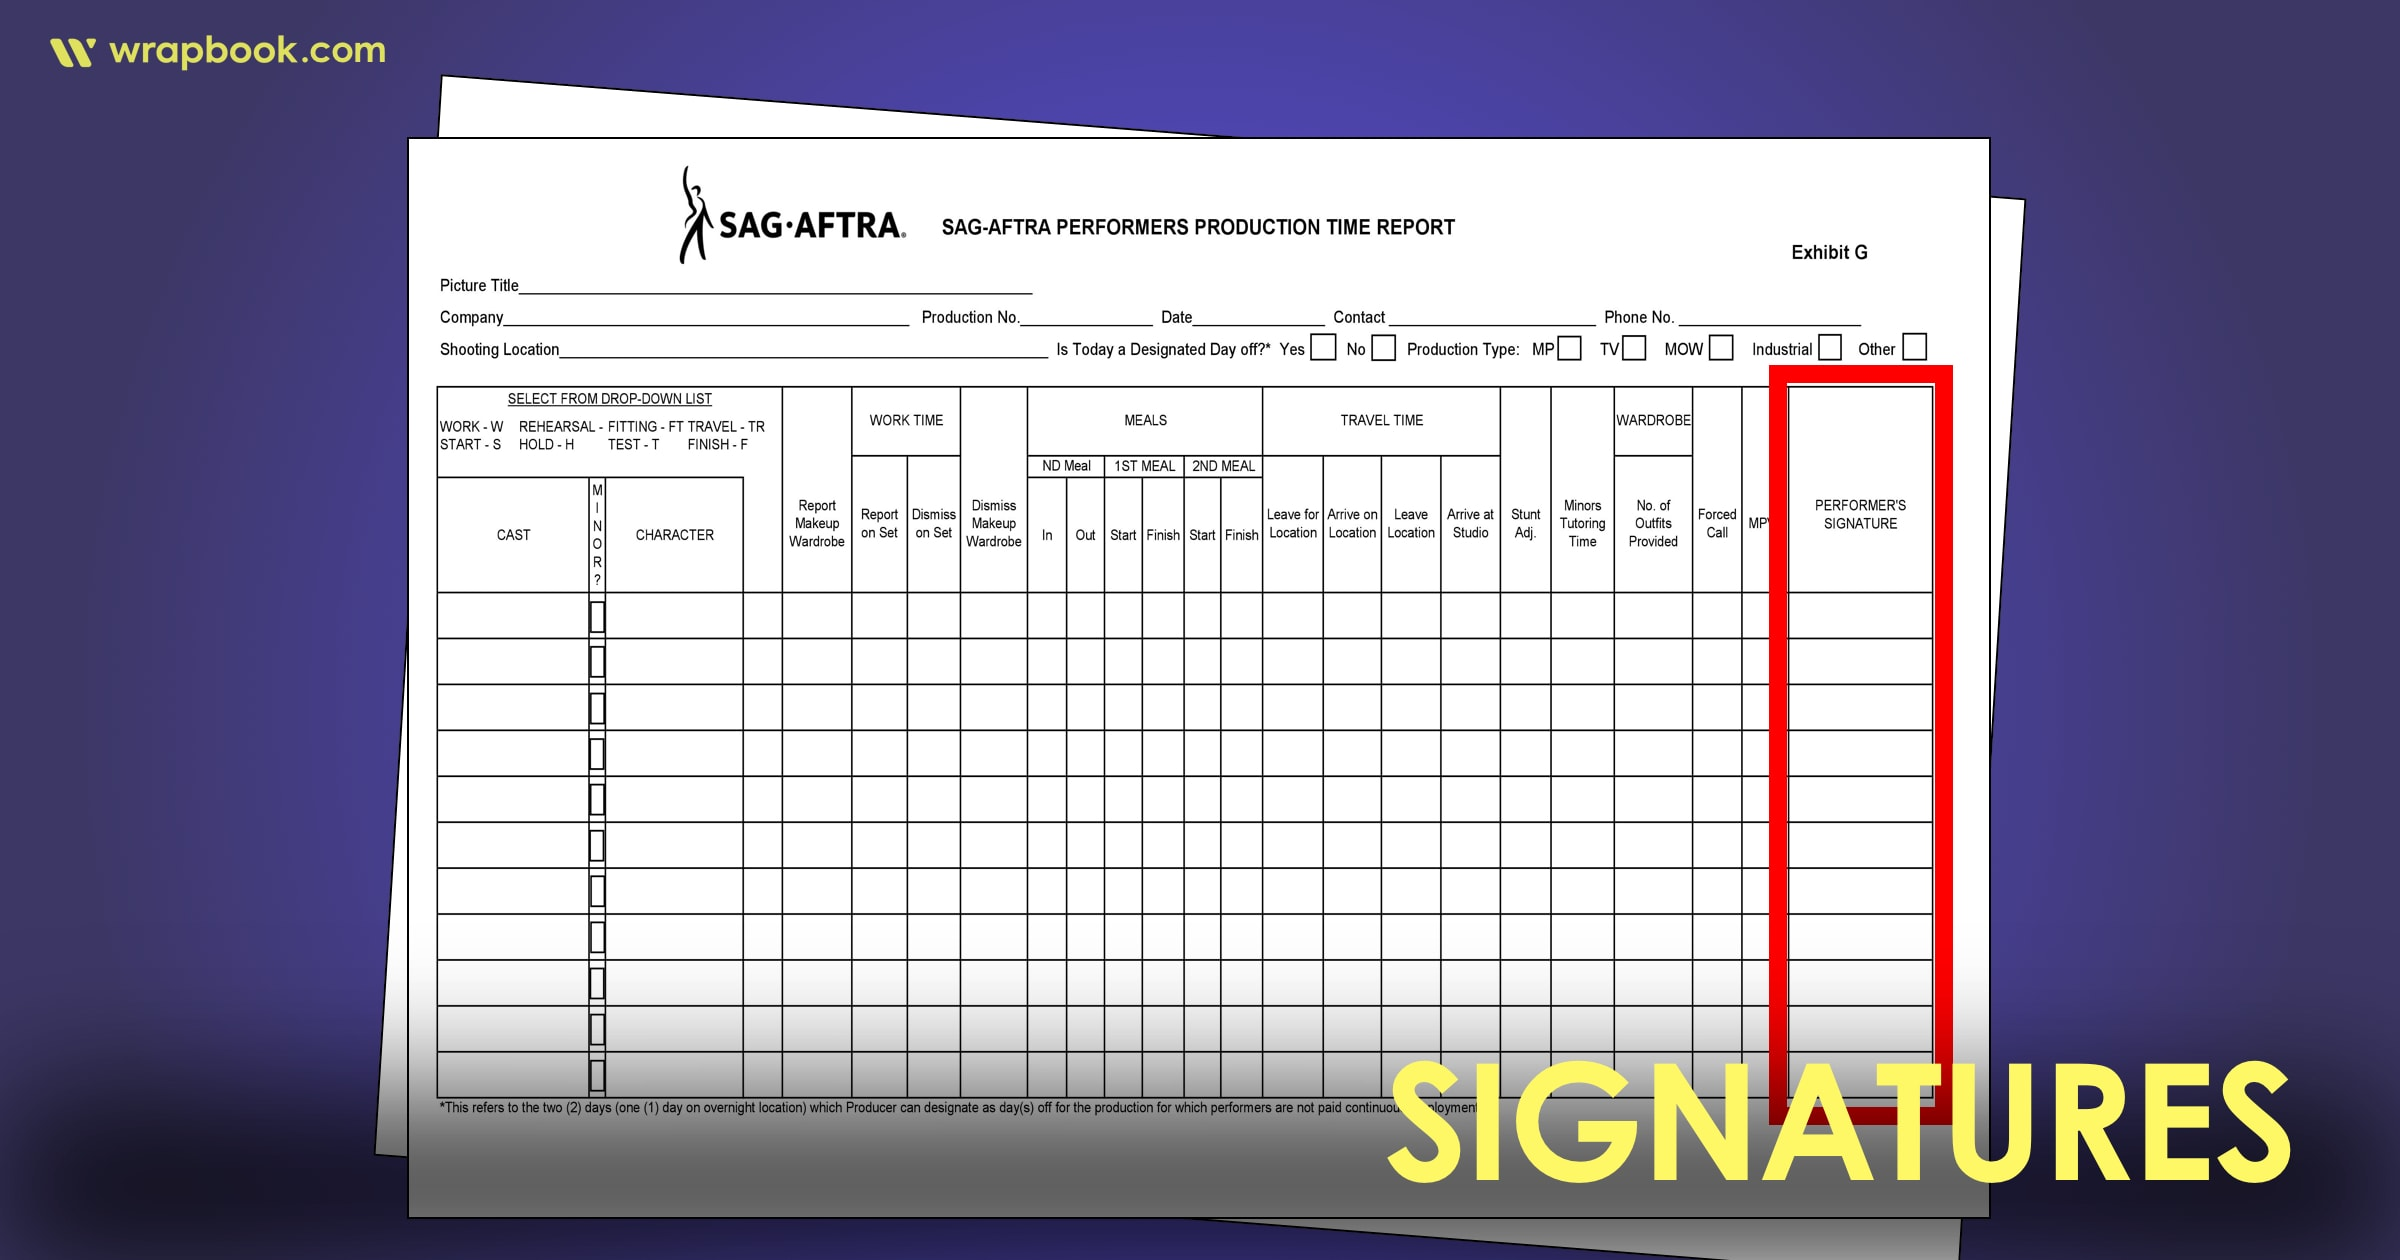 Signatures - How to Fill Out The SAG Exhibit G Form